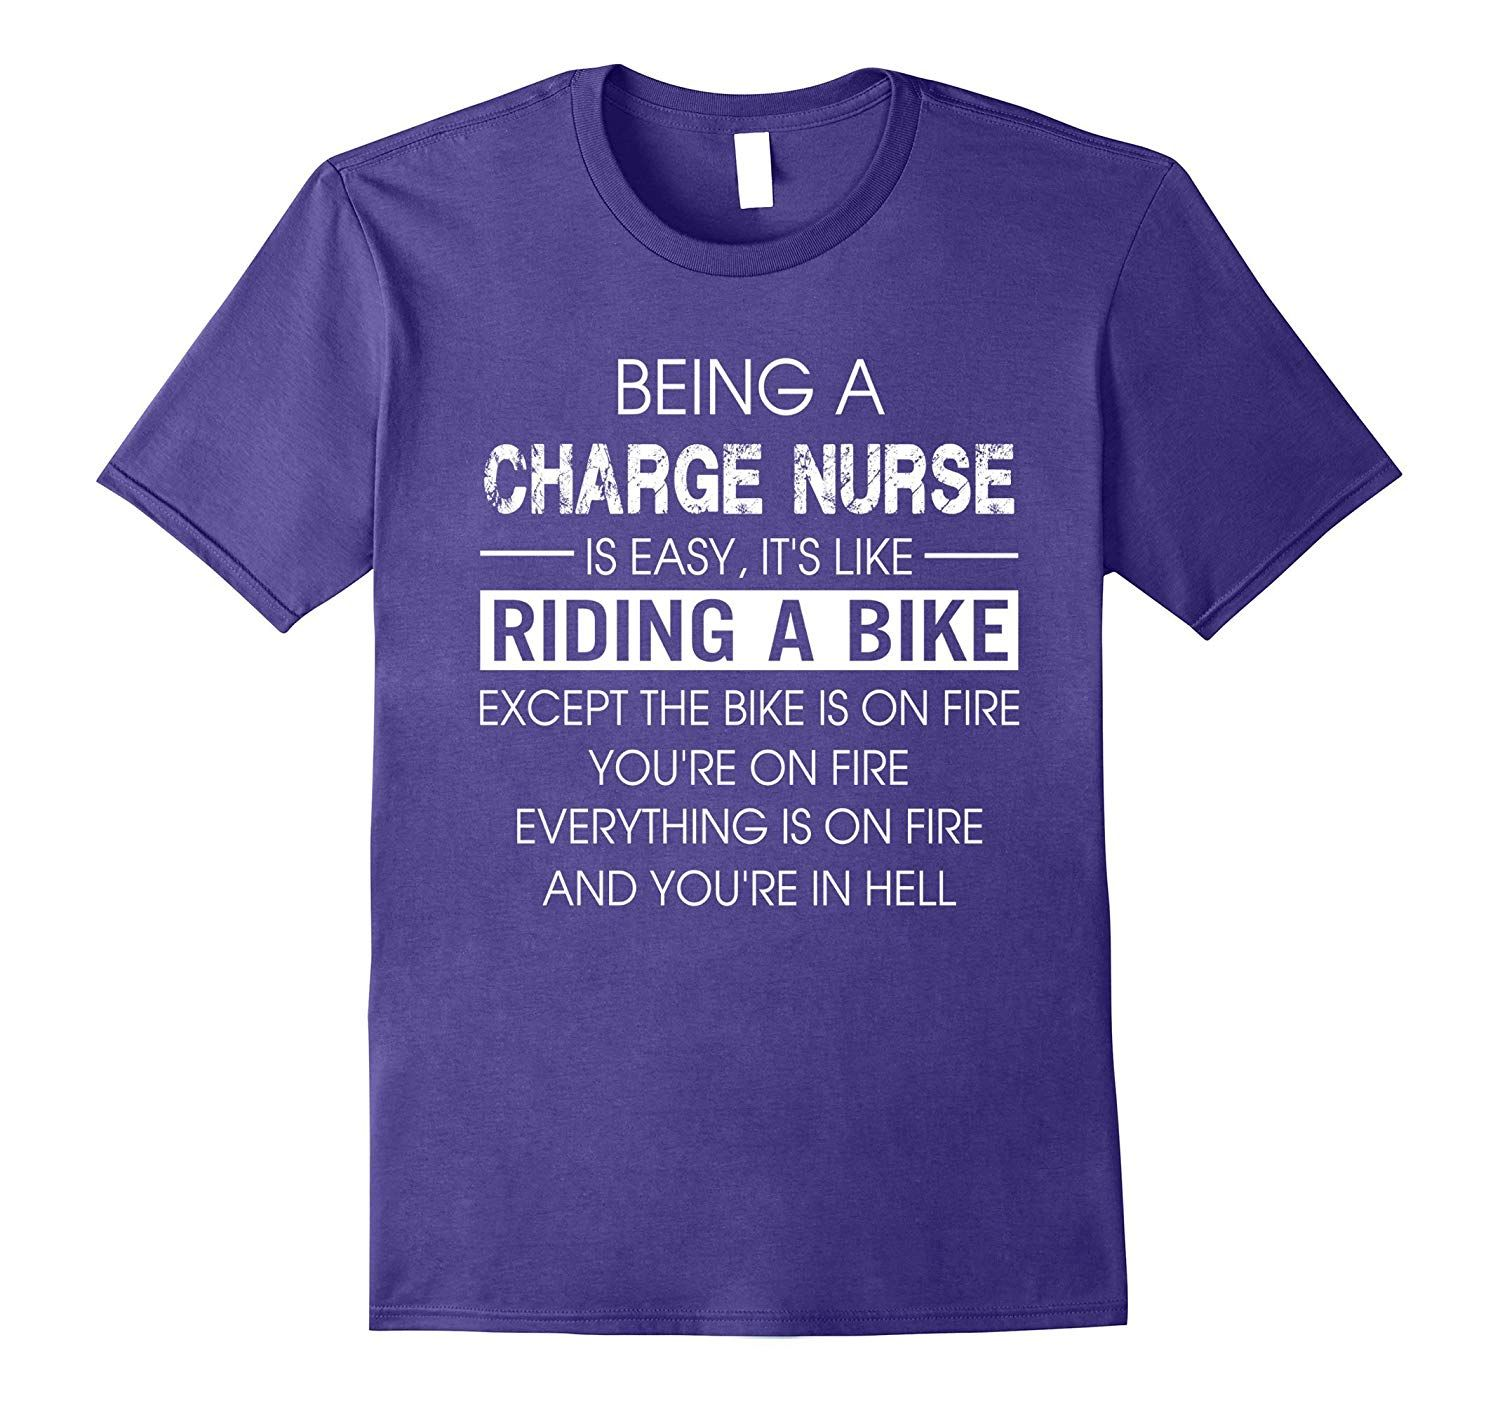 Being a charge nurse is easy it's like riding a bike t shirt | Anti trump t  shirts, T shirt, Shirts